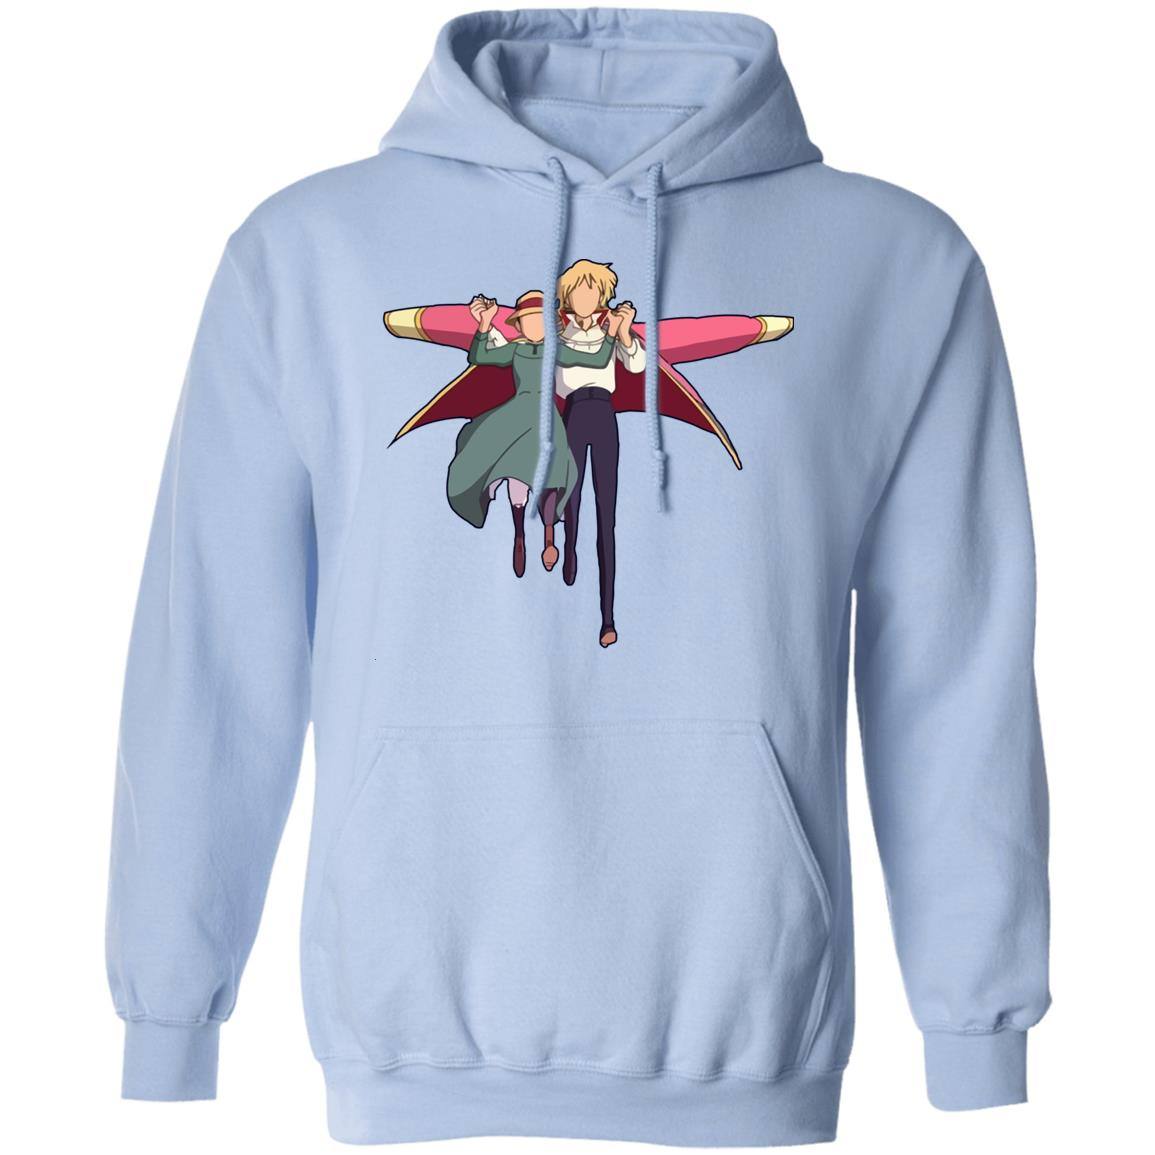 Howl's Moving Castle – Howl and Sophie Running Classic Hoodie